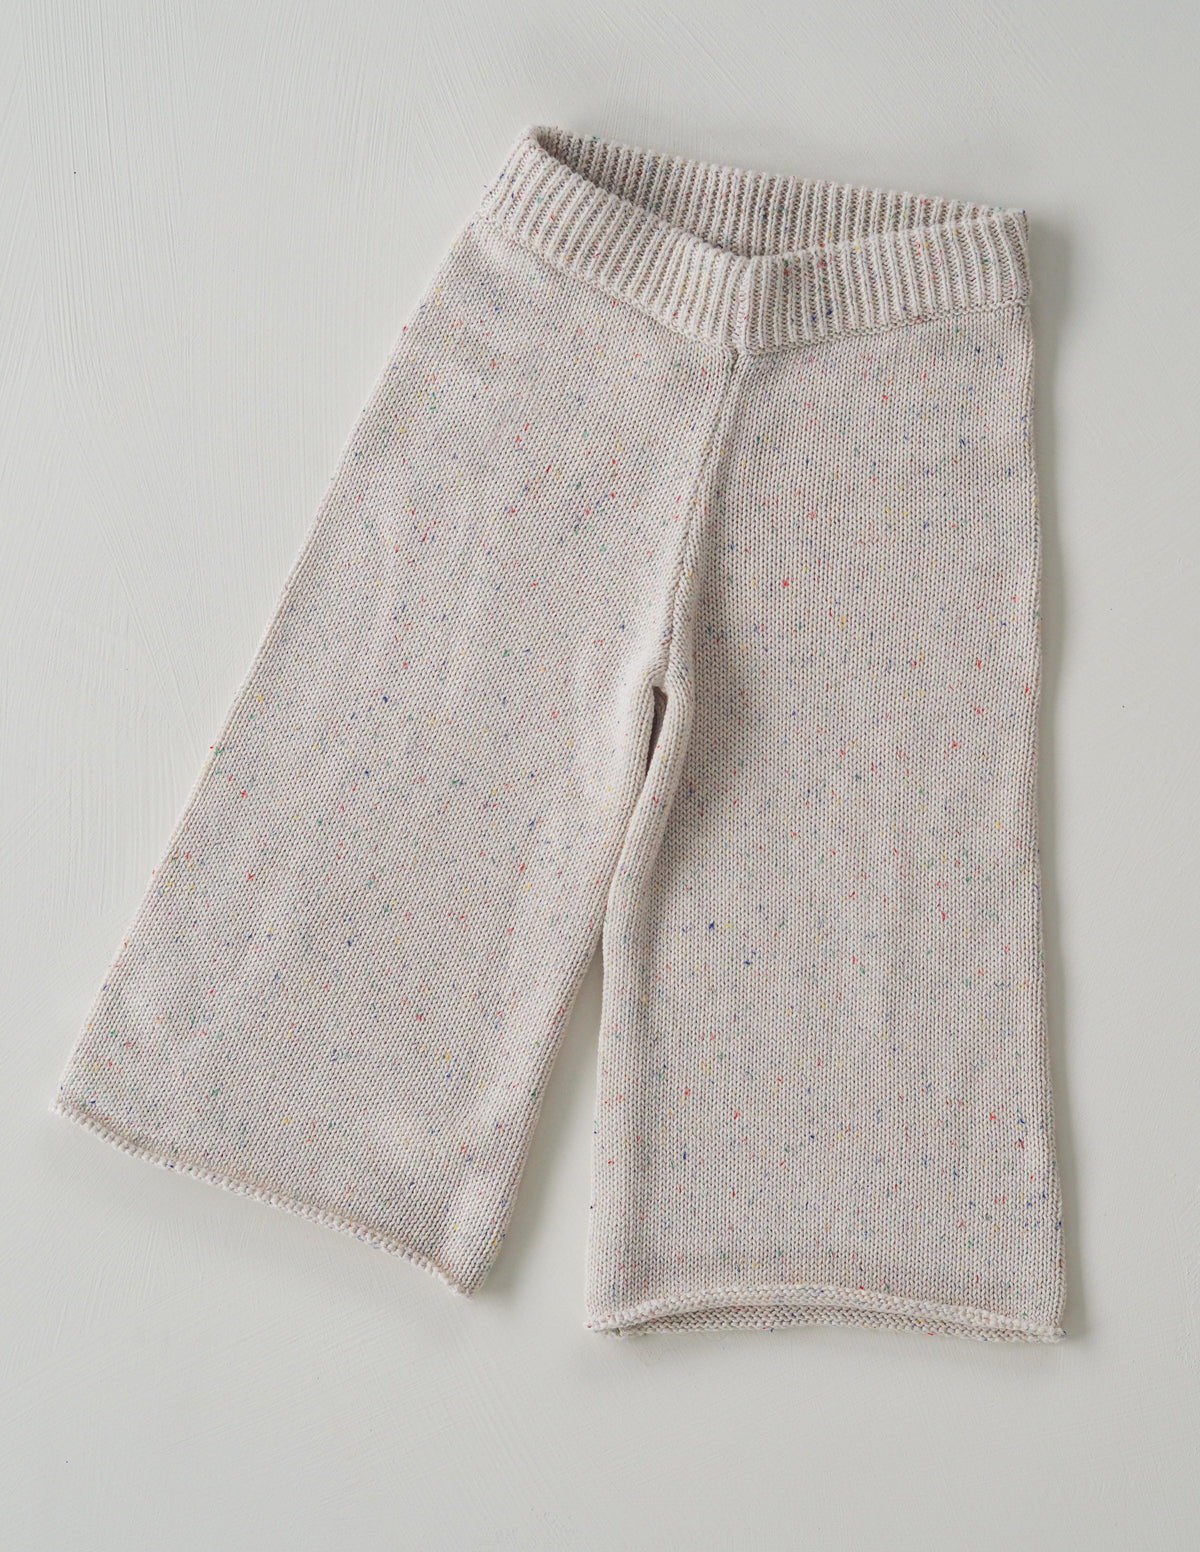 The original cream sprinkle knit pant